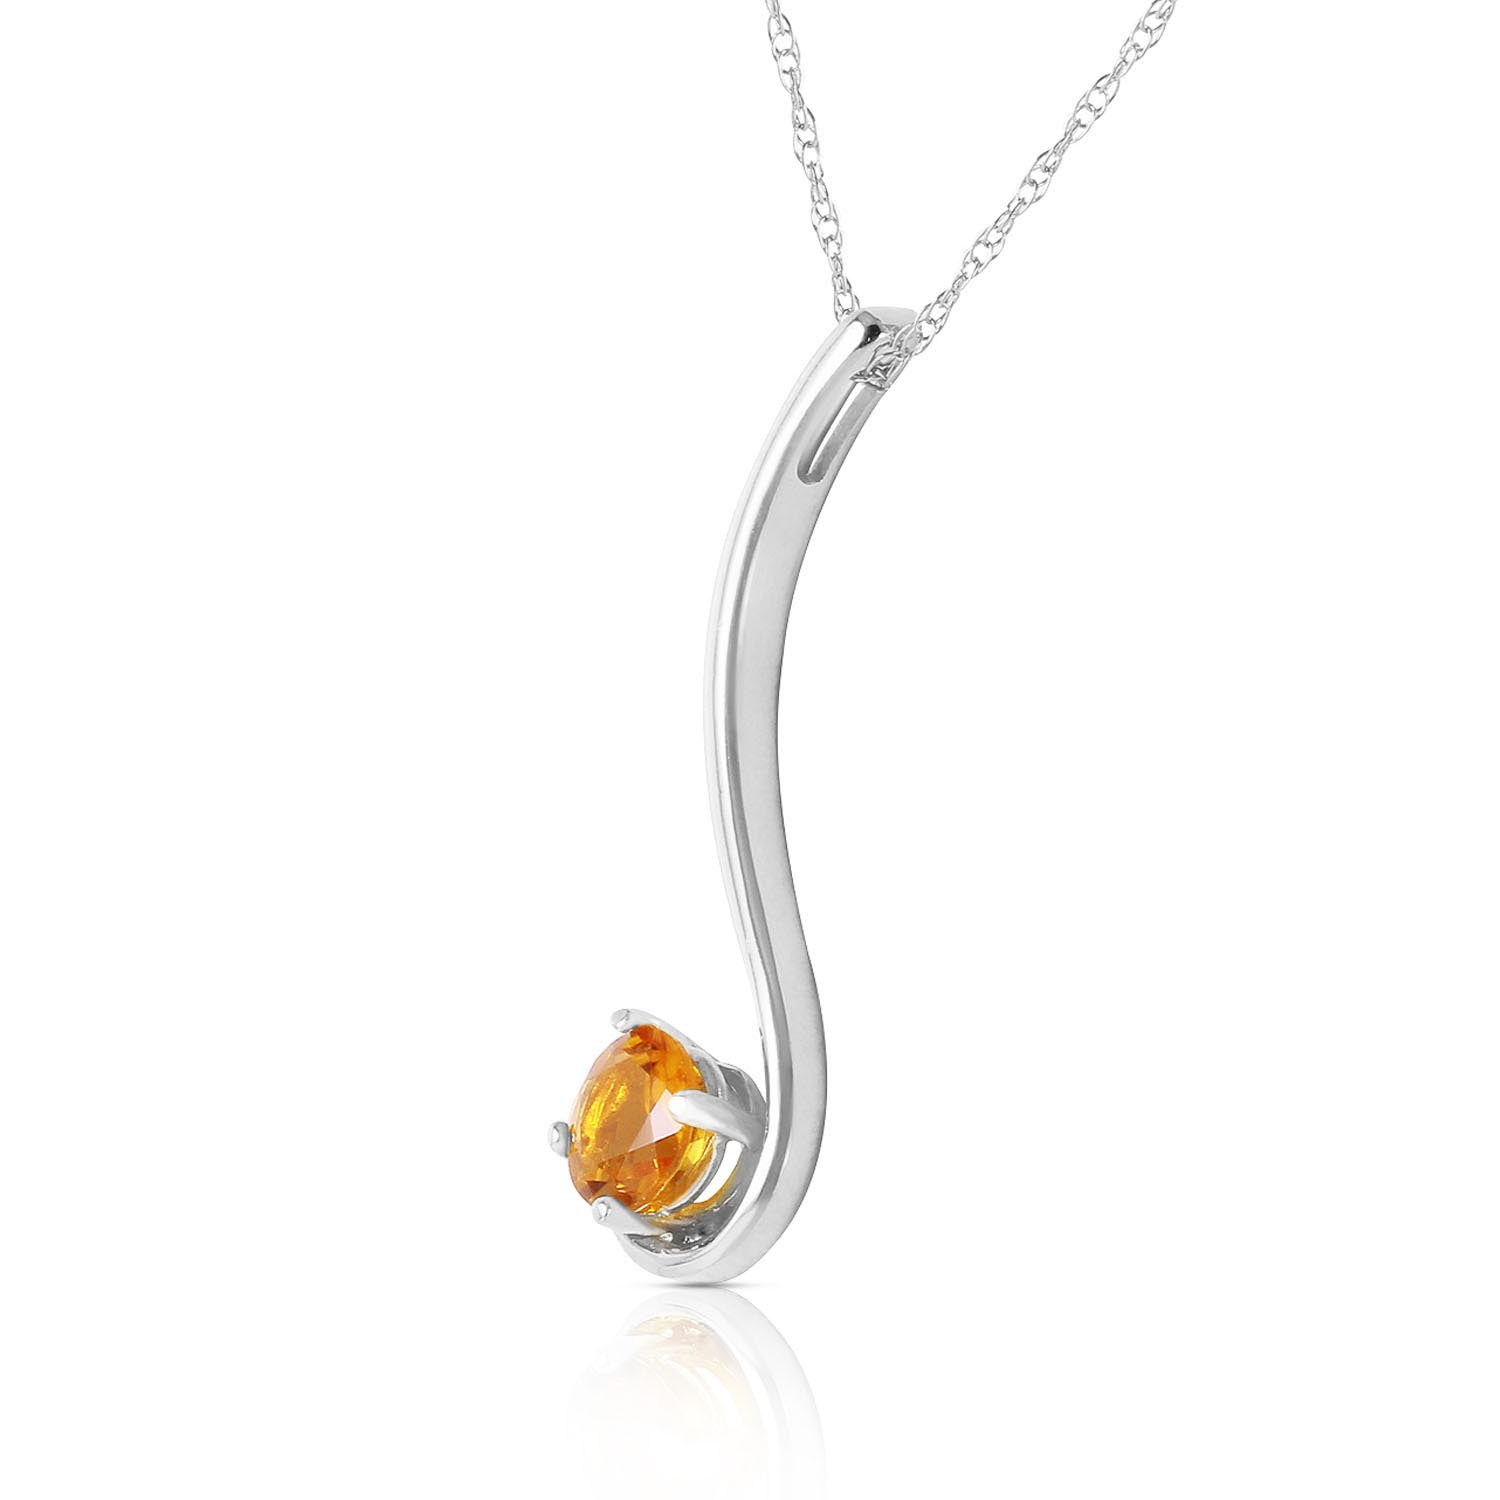 Round Brilliant Cut Citrine Pendant Necklace 0.55ct in 9ct White Gold